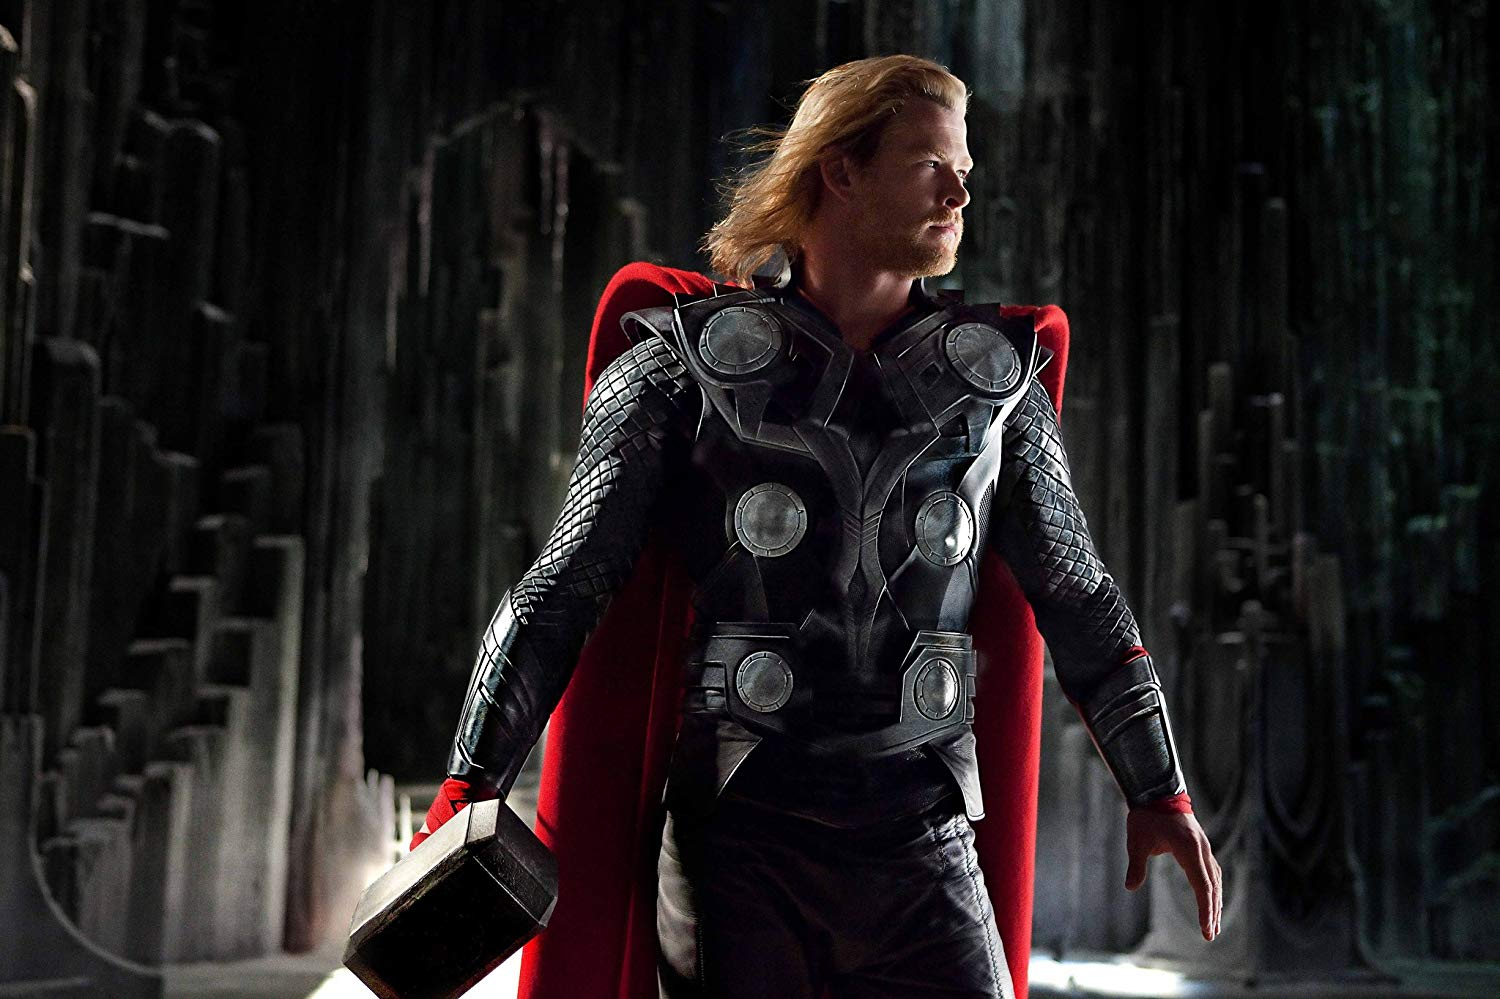 MOVIE REVIEW: Thor — Every Movie Has a Lesson